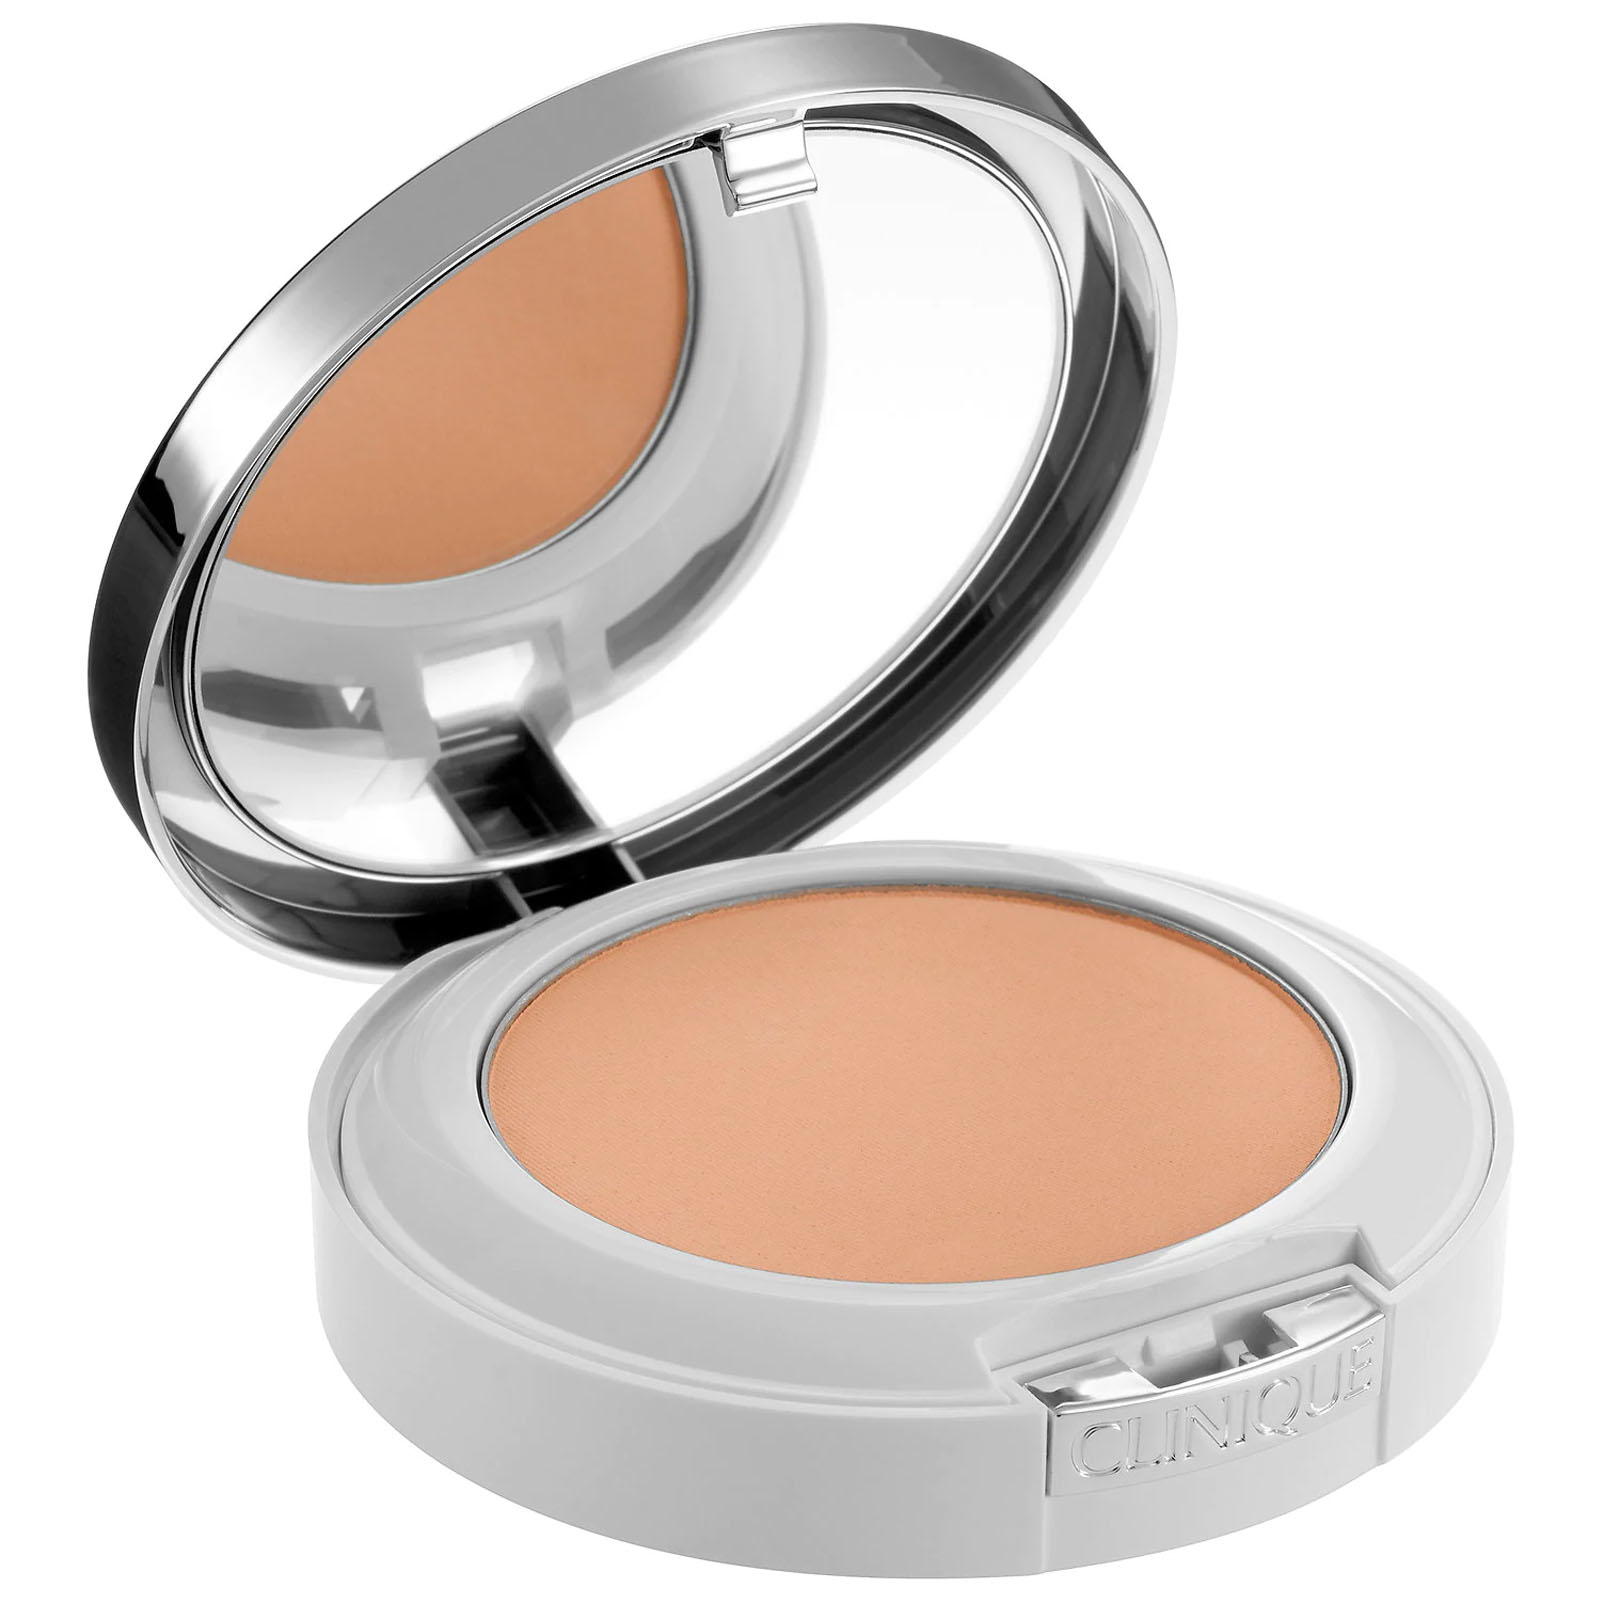 BEYOND PERFECTING POWDER FOUNDATION + CONCEALER (MAQUILLAJE EN POLVO)